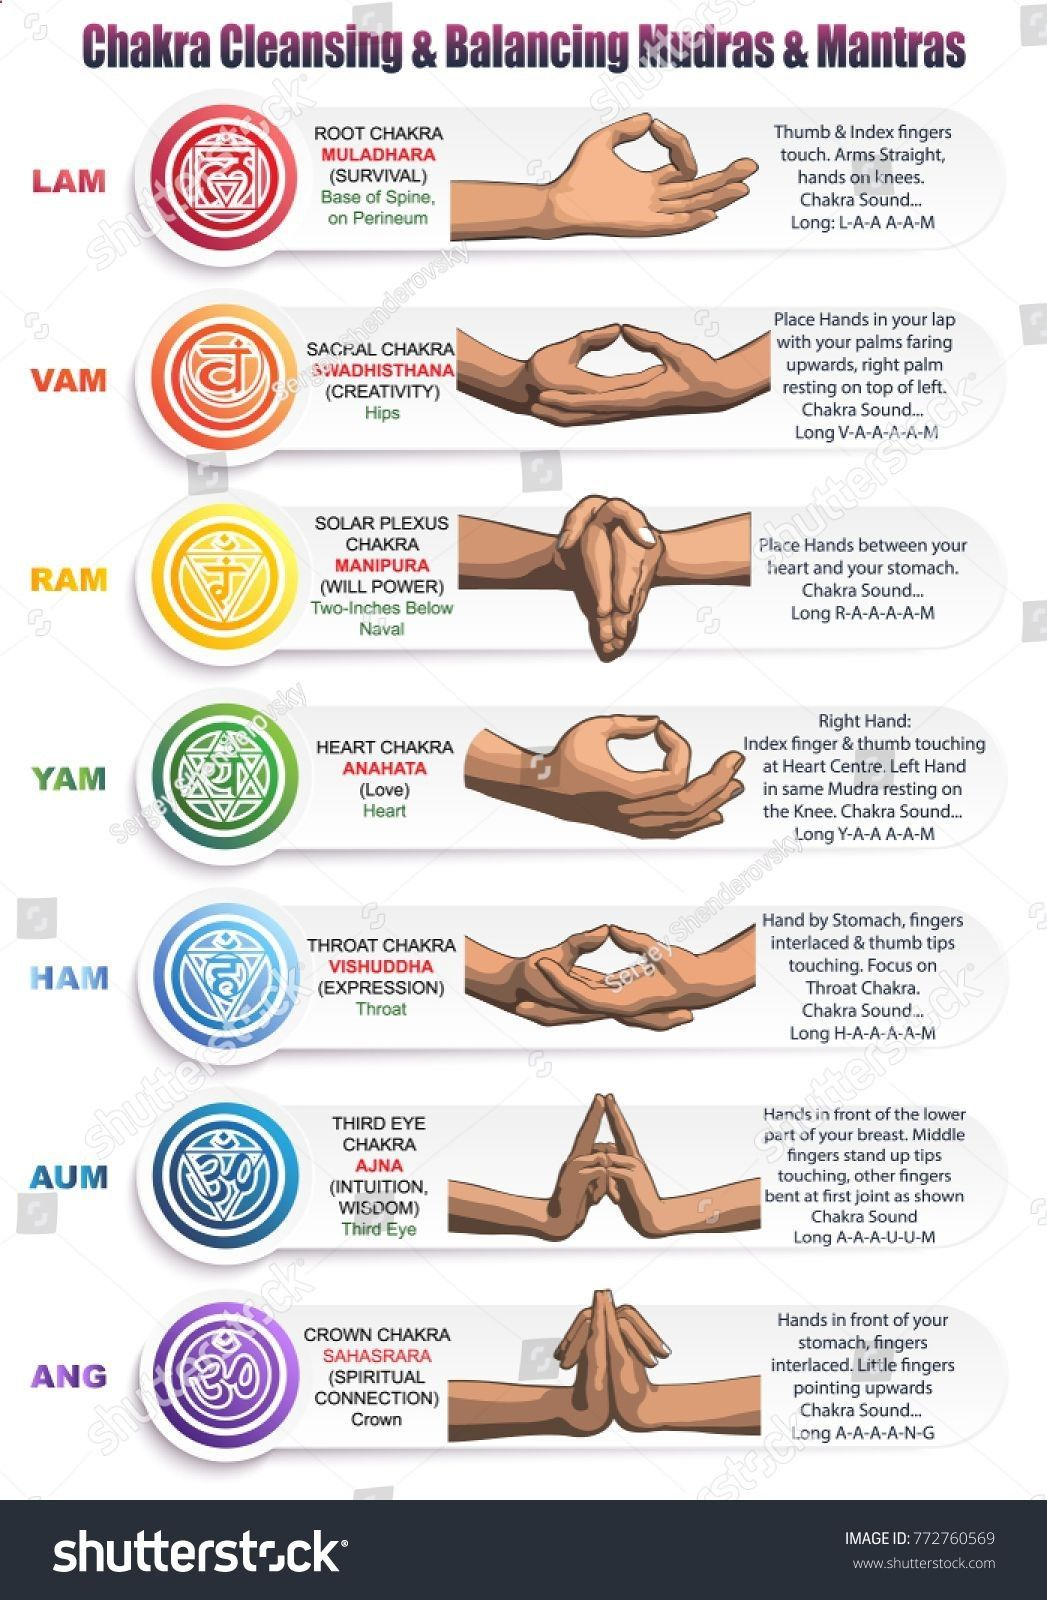 Reiki Symbols A Table Of Meanings Colors Symbols Signs And